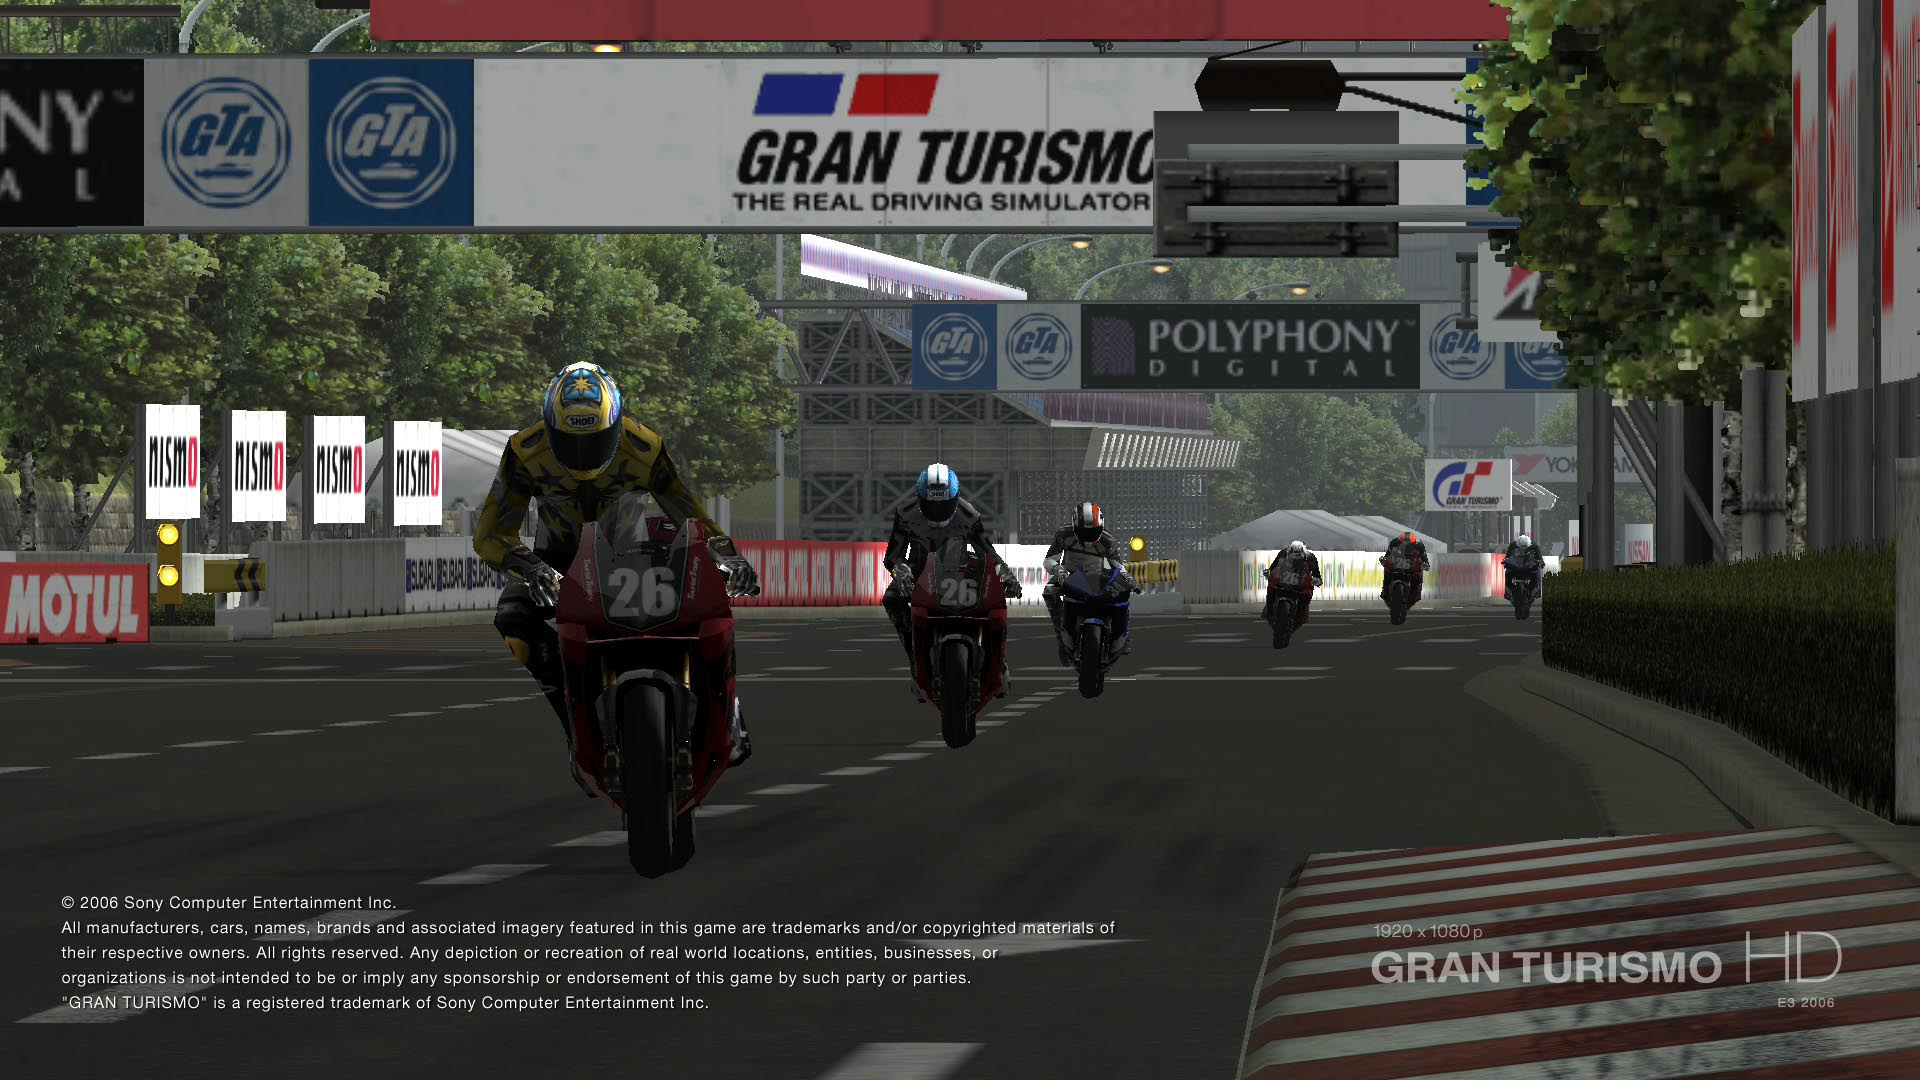 Gran turismo hd full hd wallpaper and background image 1920x1080 video game gran turismo hd wallpaper publicscrutiny Image collections